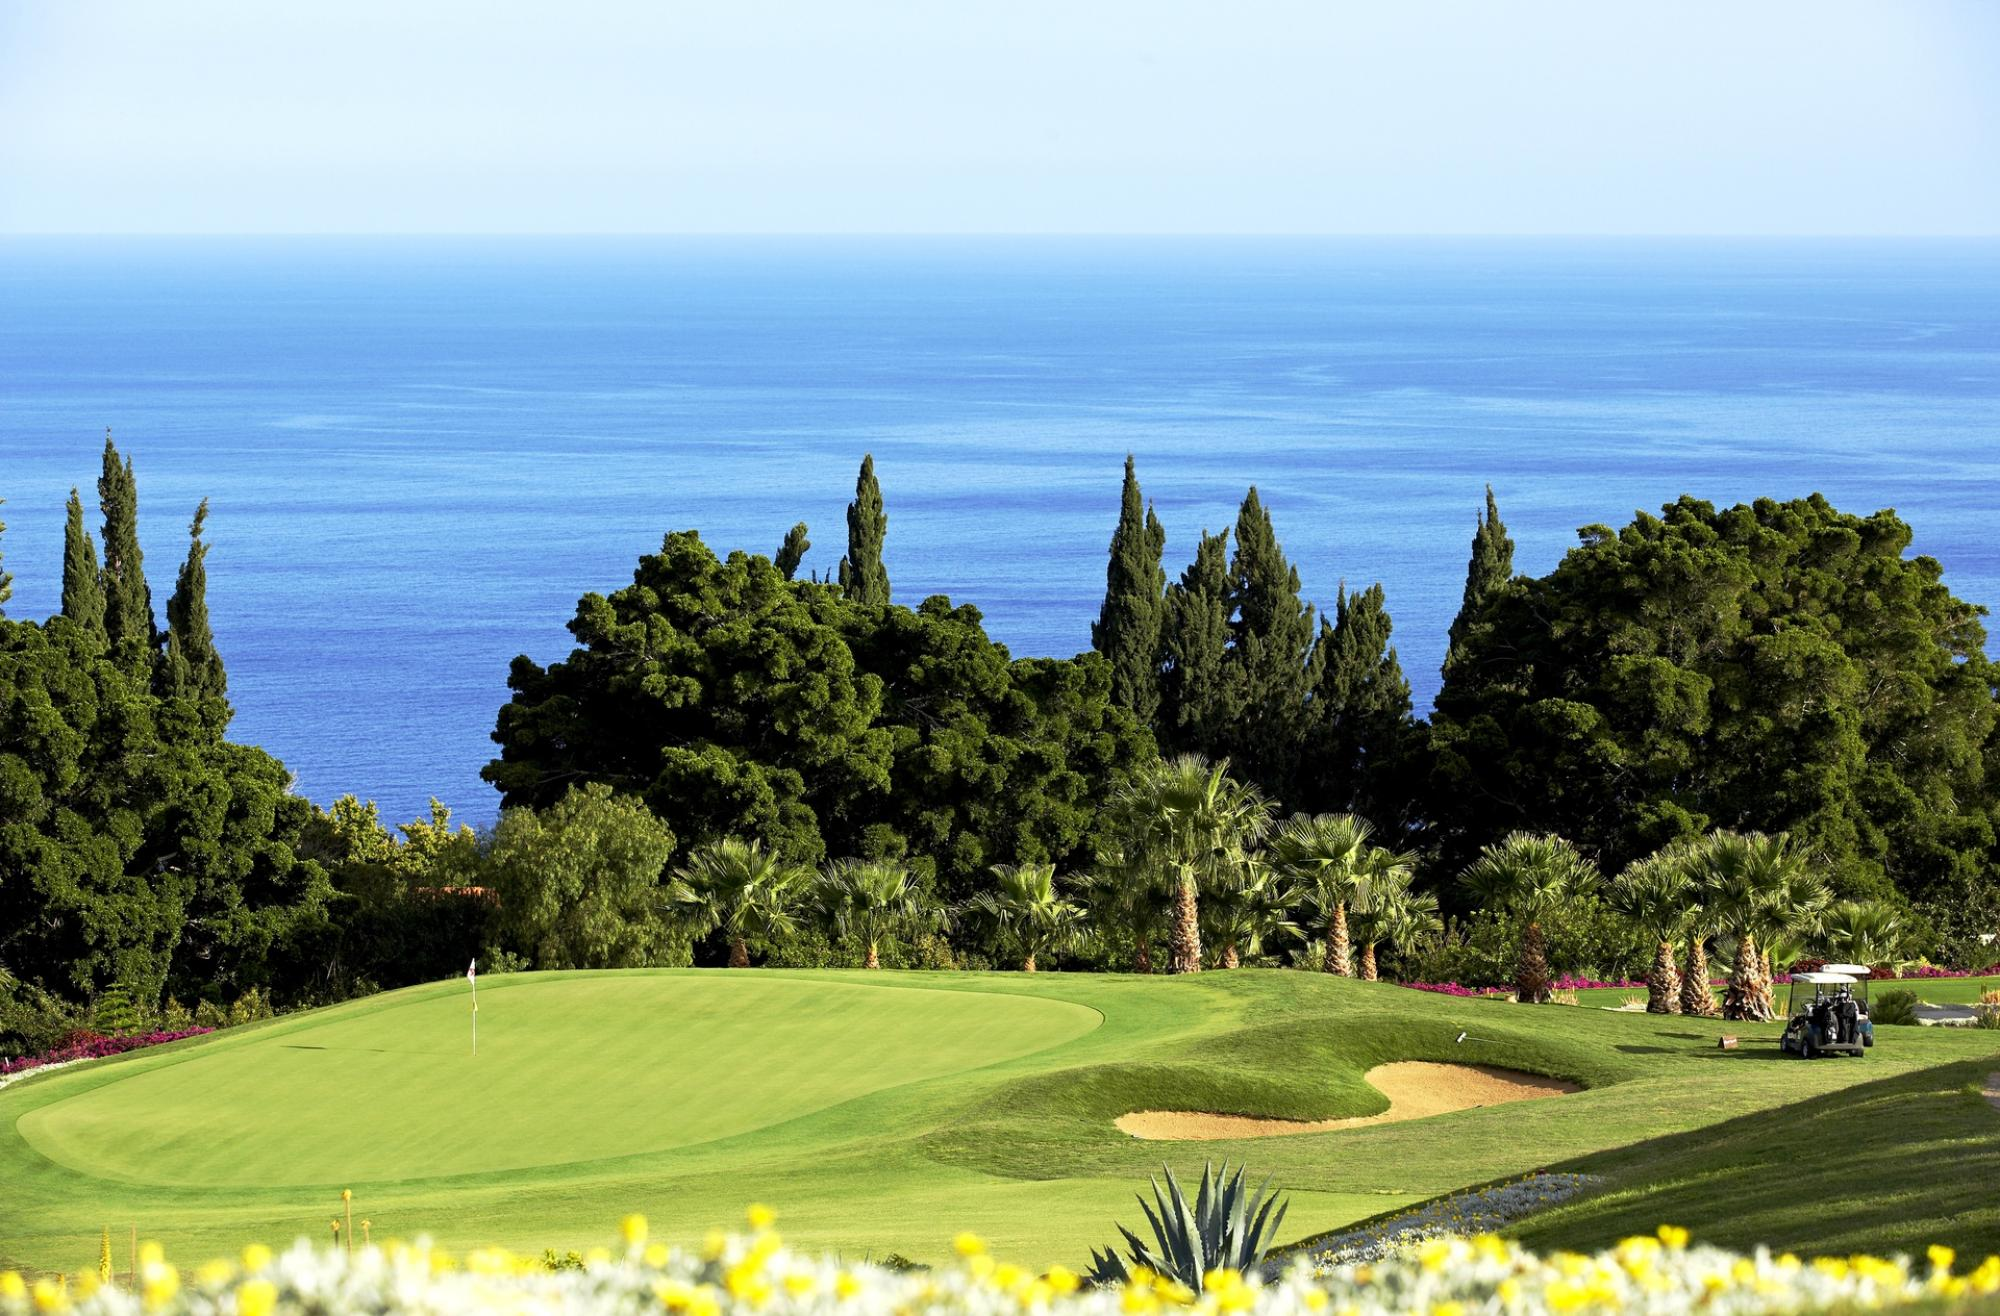 Tecina Golf Club consists of lots of the most excellent golf course near La Gomera